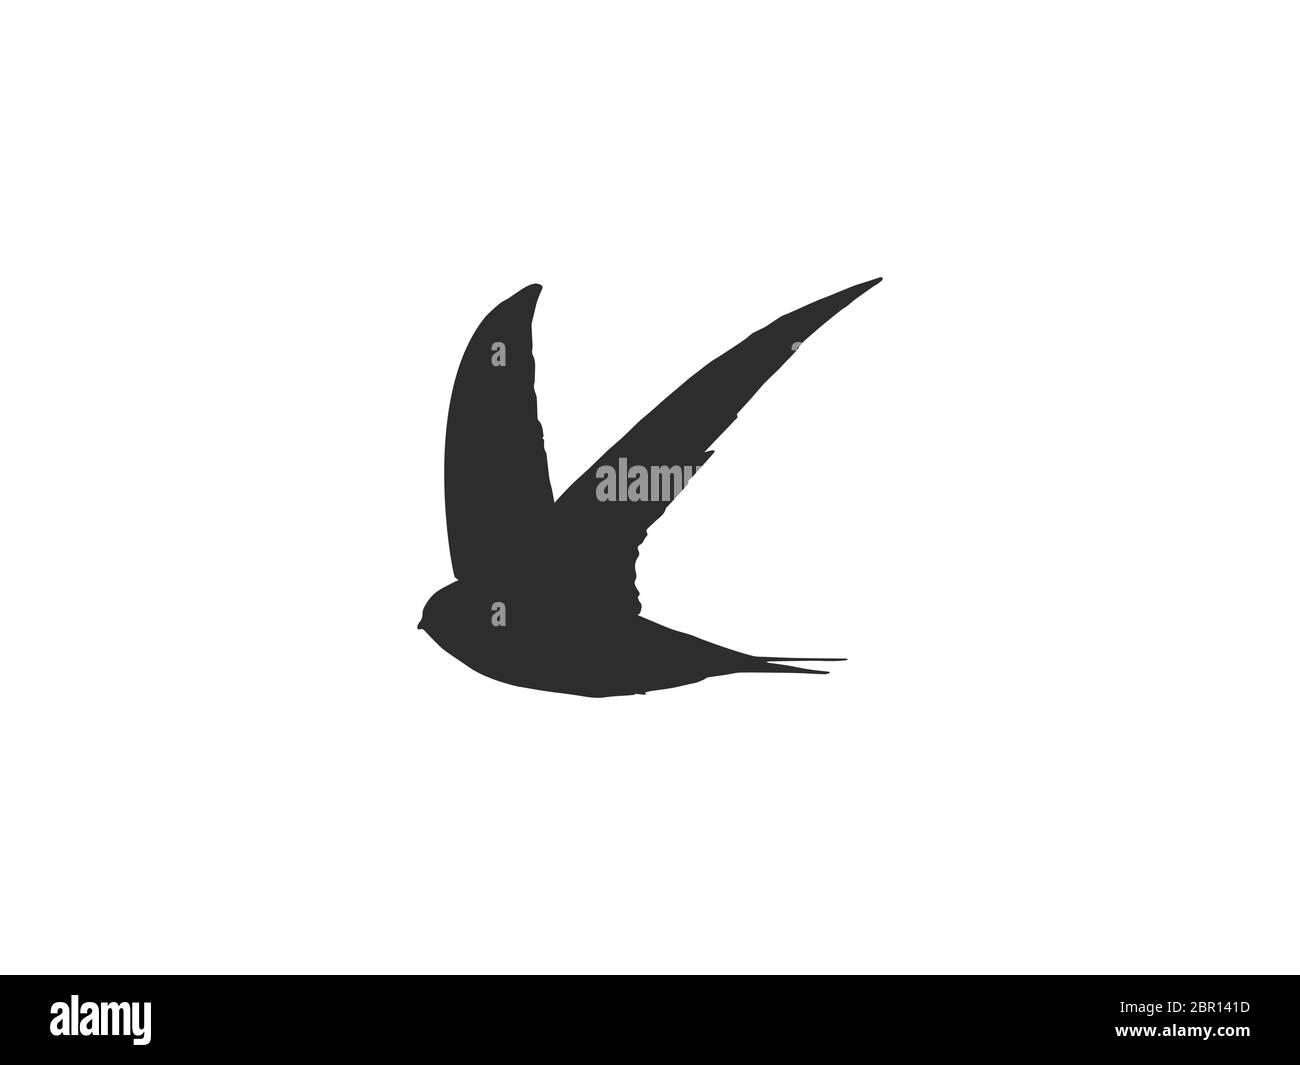 swallow emblem high resolution stock photography and images alamy https www alamy com bird nature icon vector illustration flat design image358369577 html